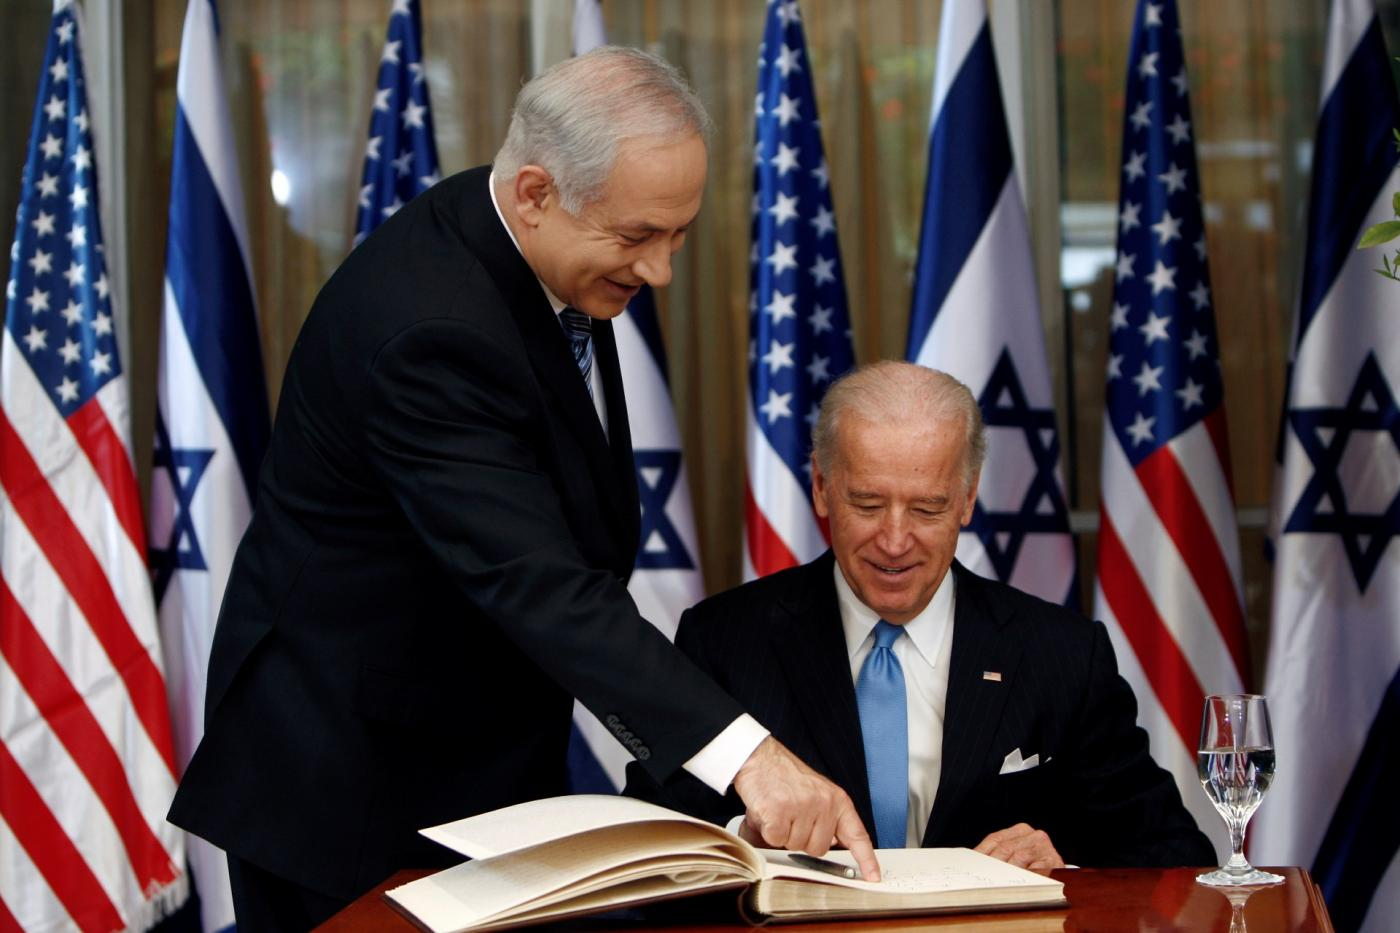 Biden and Israeli Prime Minister Benjamin Netanyahu meet in Jerusalem in 2010 (Reuters)